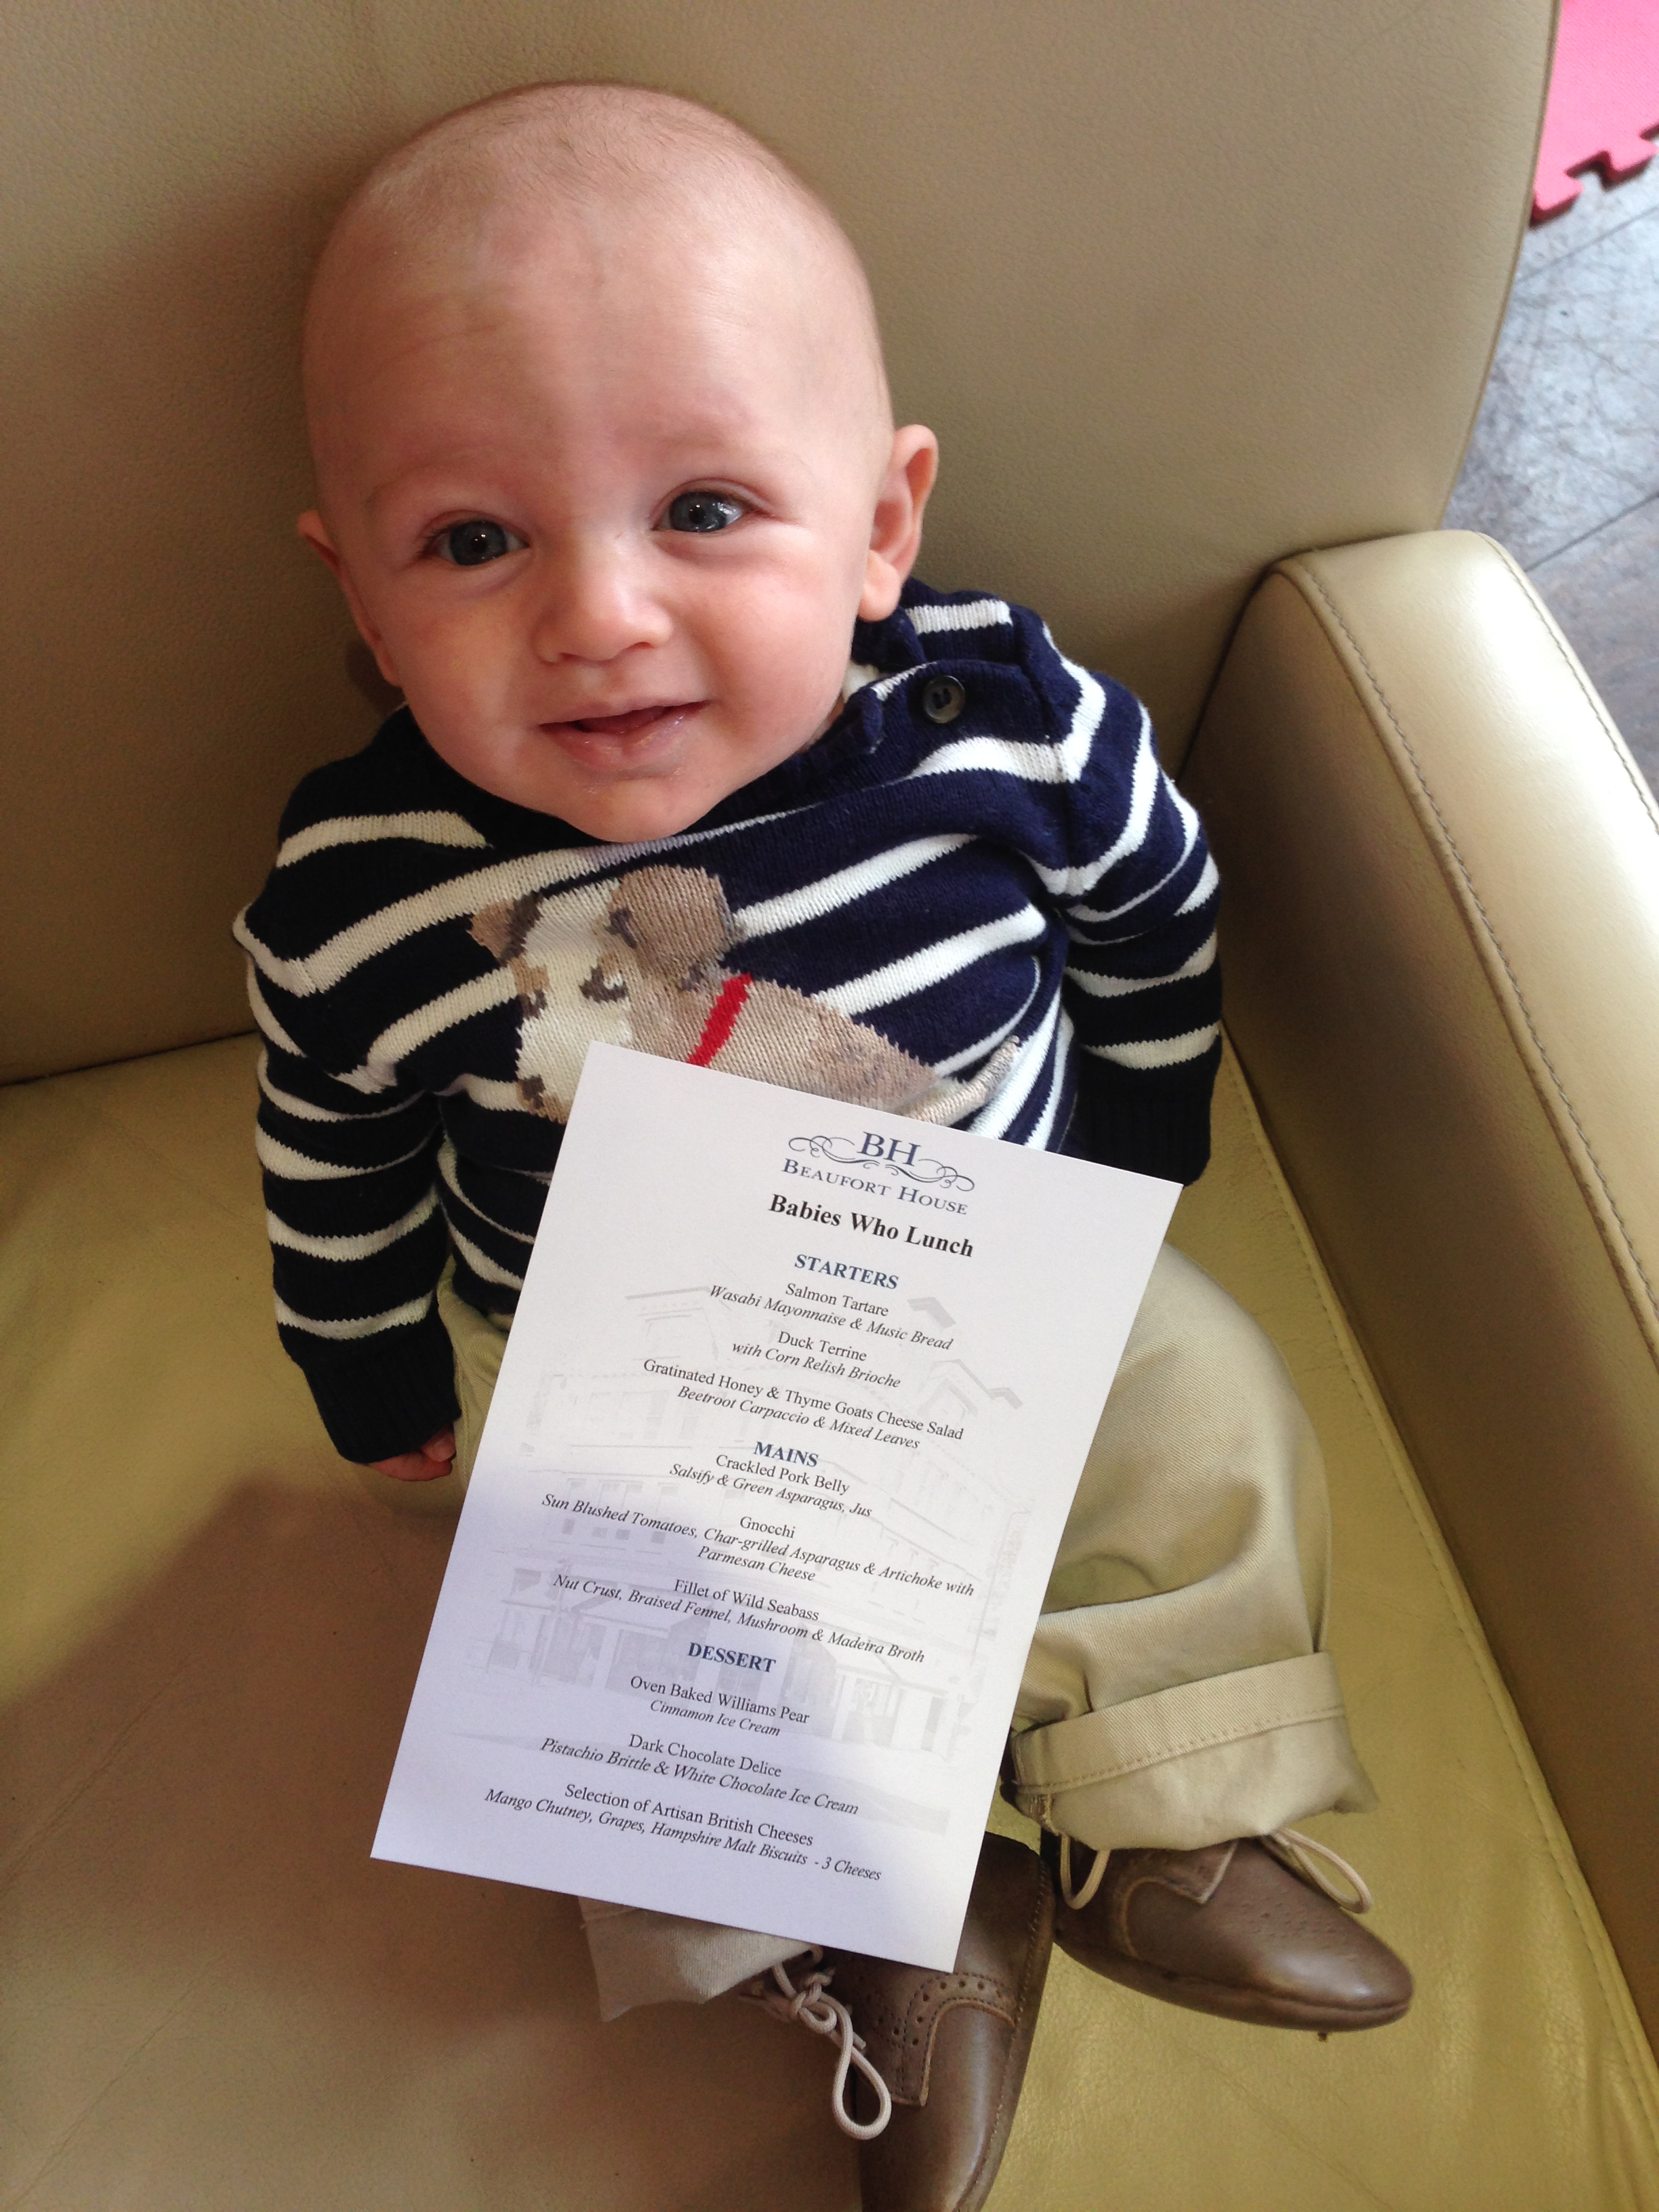 bag high chair tufted velvet best child friendly restaurants in london (plus tips on eating out with babies)